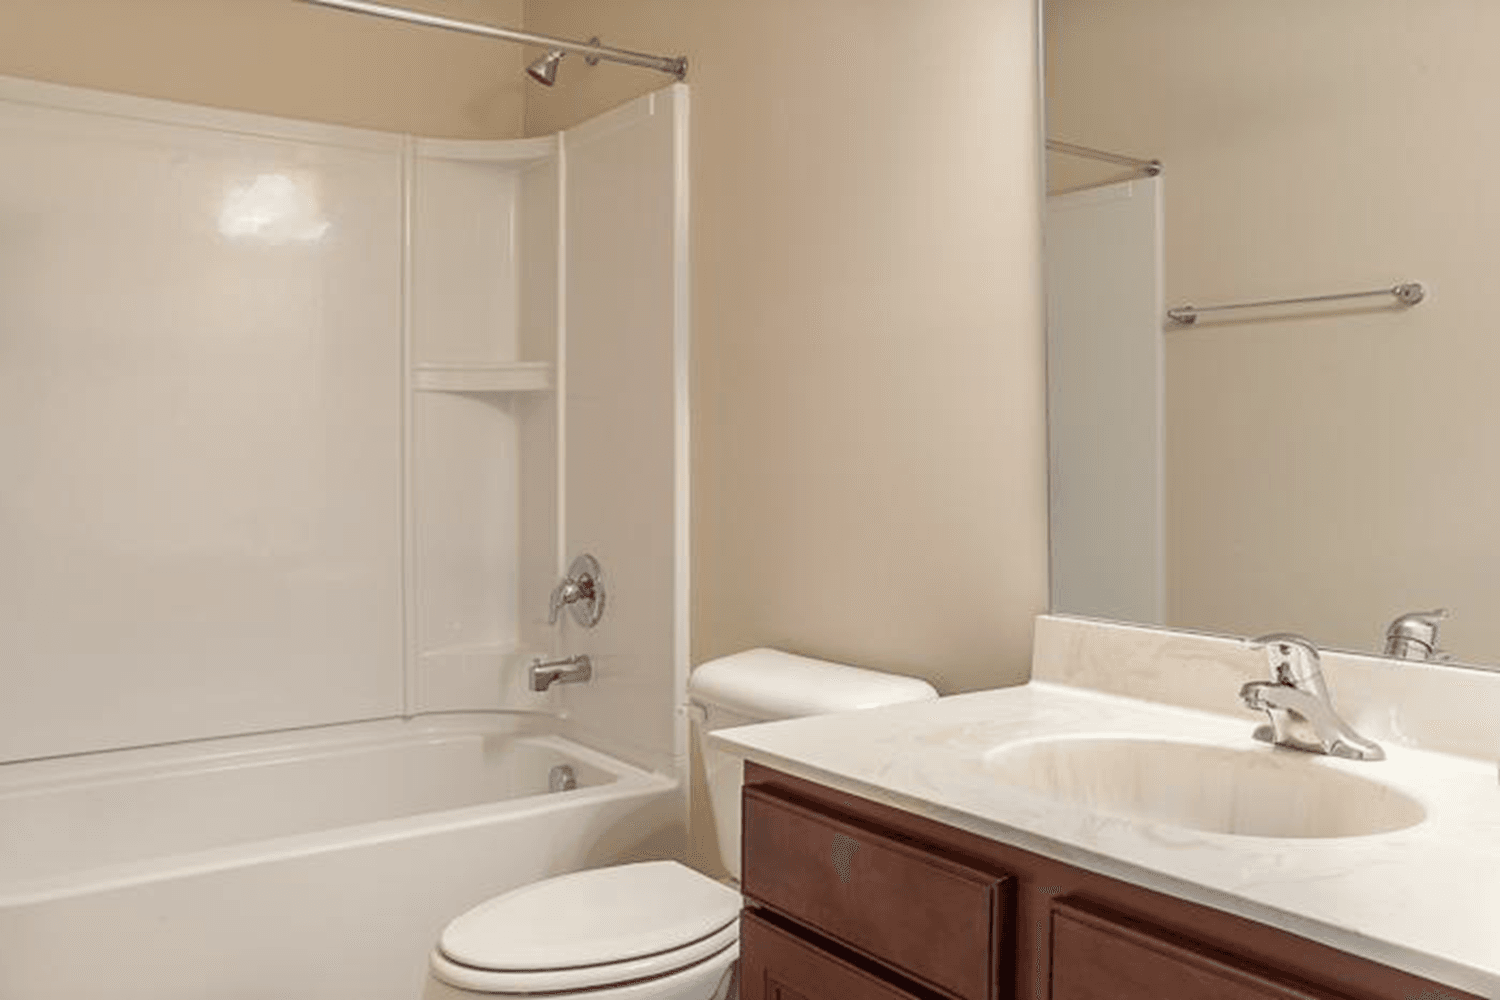 Bathroom featured in The Grayson (Build on your lot) By Lamar Smith Homes in Savannah, GA